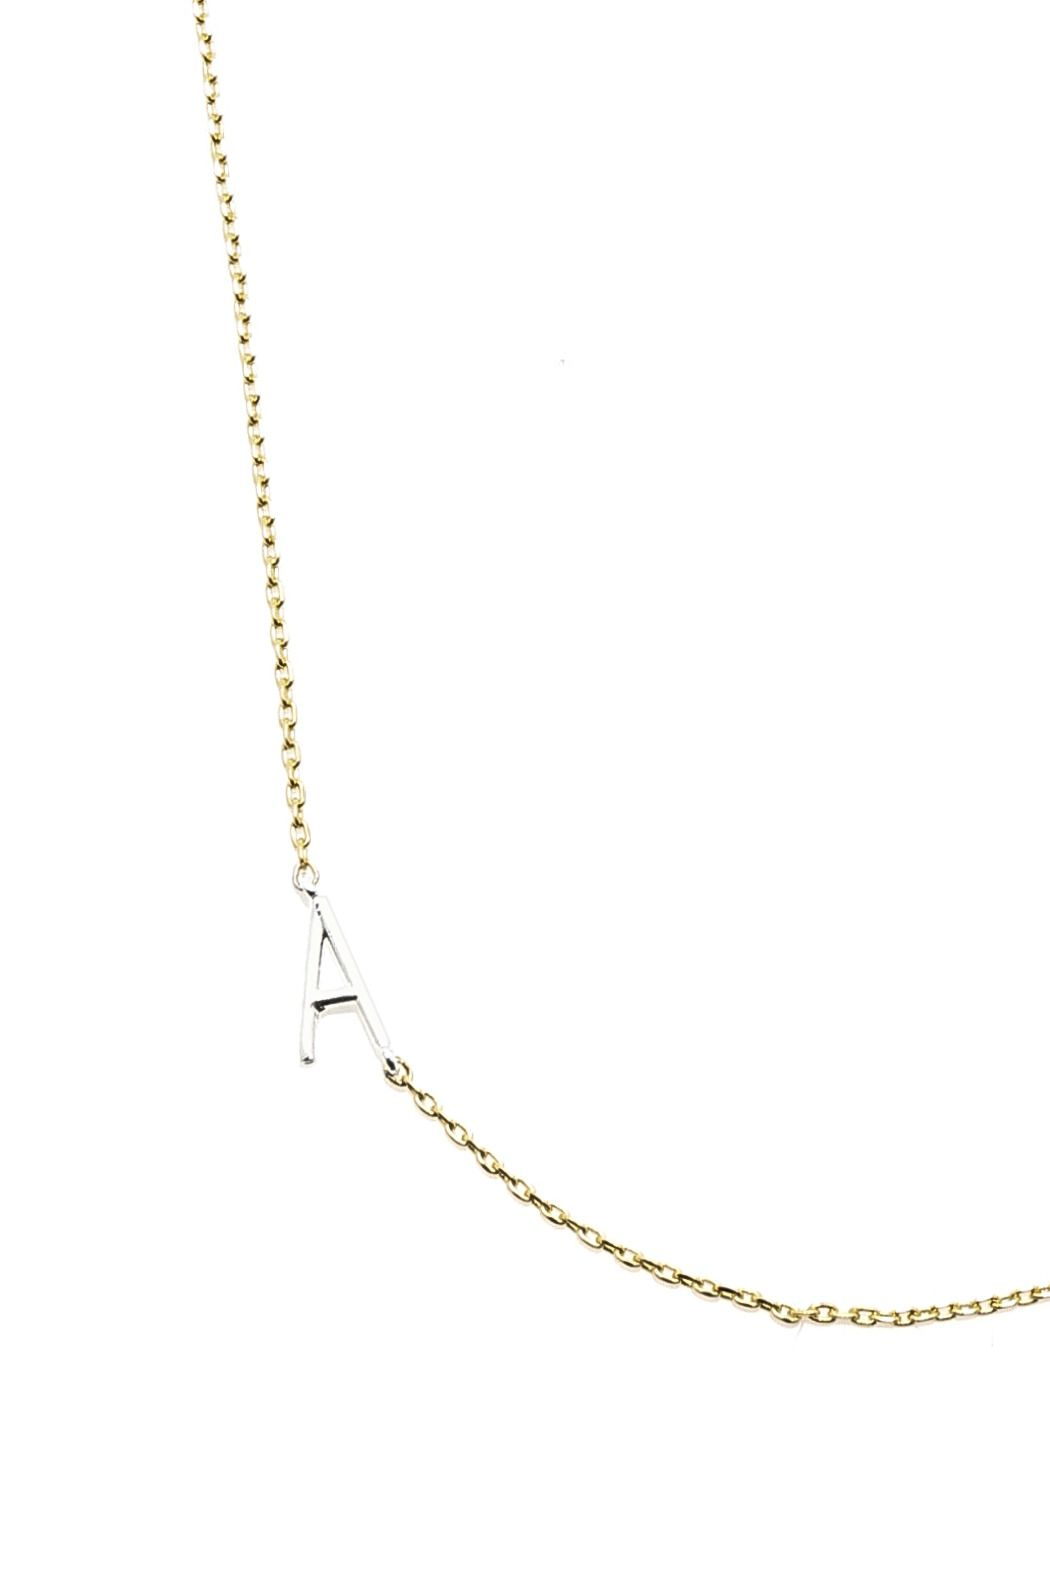 initial pdpimgshortdescription love with wid usm pendant chains resmode necklace gold diamonds comp op coin roberto layer sharpen qlt fpx product tif white letter shop